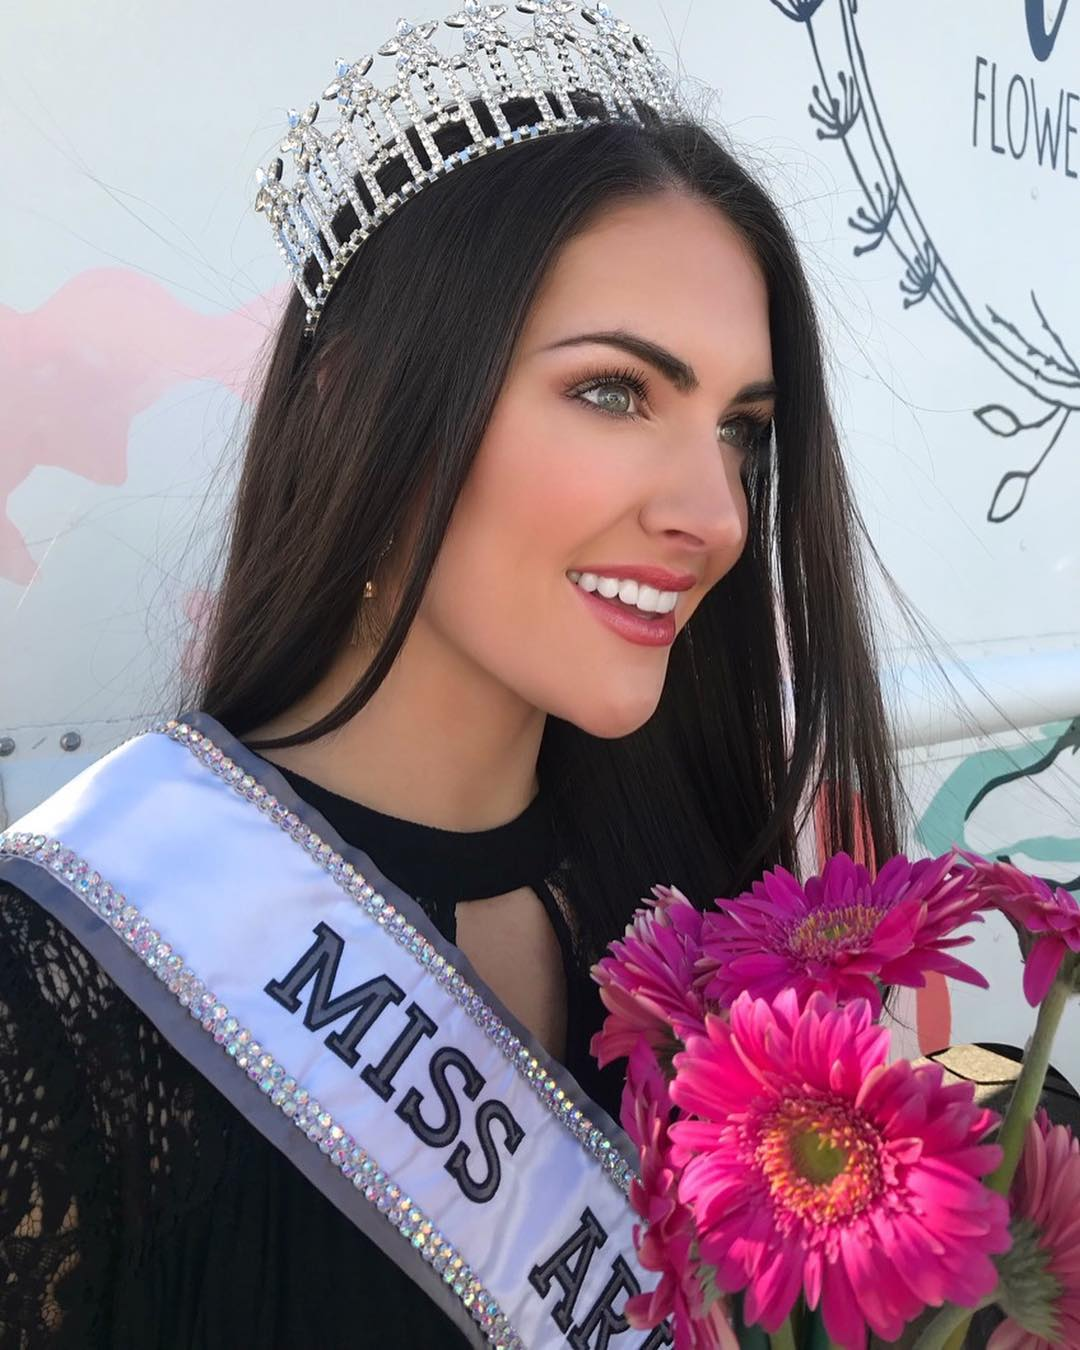 candidatas a miss usa 2019. final: 2 may. - Página 8 Ffbrpttr